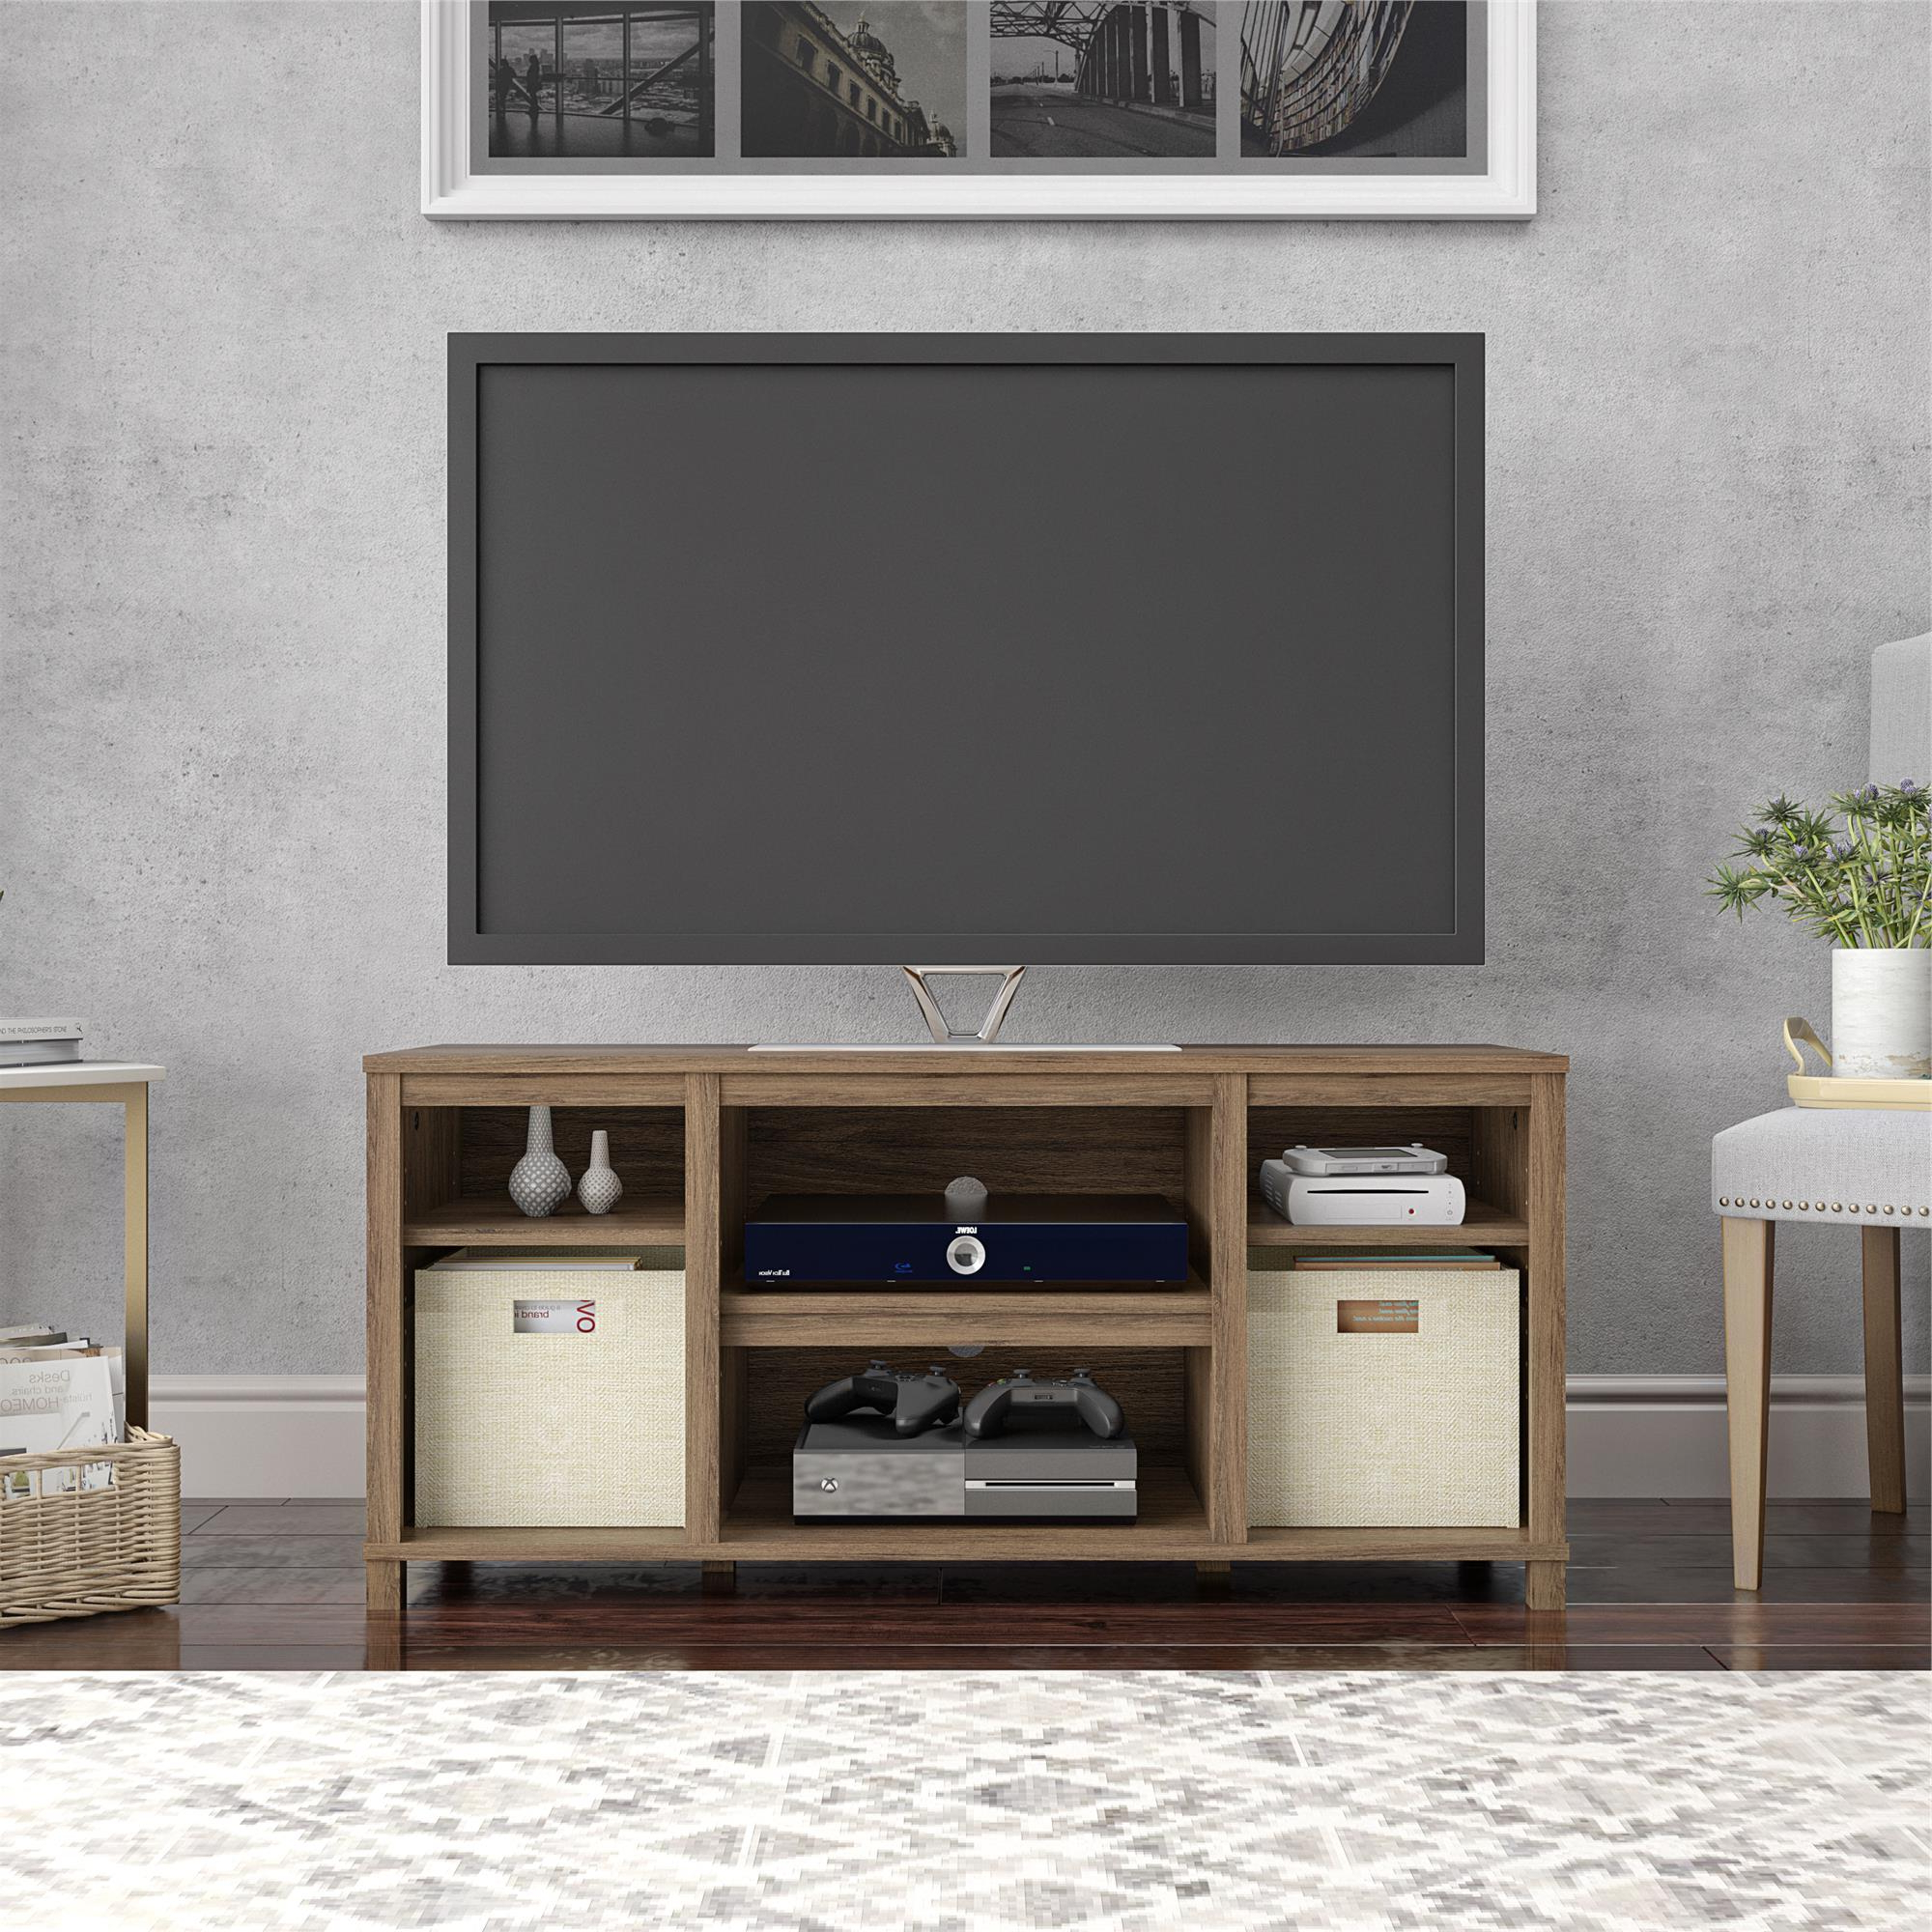 """Most Recent Allegra Tv Stands For Tvs Up To 50"""" Throughout Mainstays Parsons Cubby Tv Stand For Tvs Up To 50"""", Rustic (View 5 of 25)"""